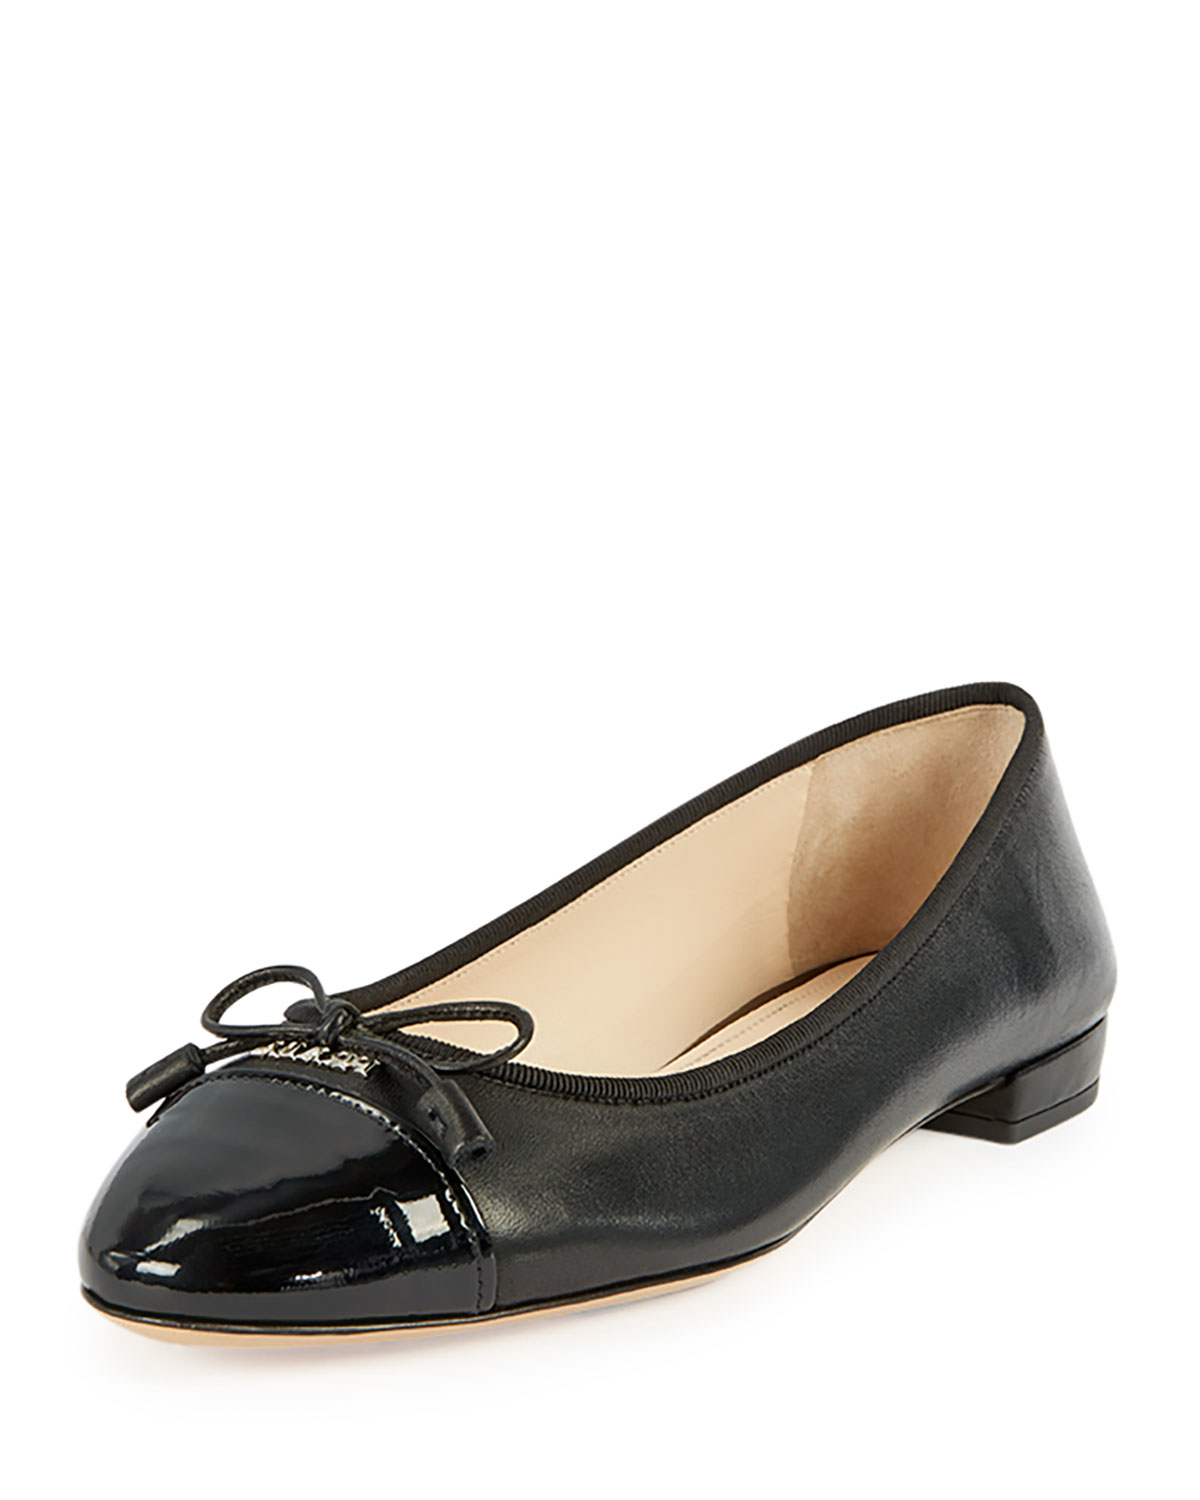 Leather ballerina shoes Prada